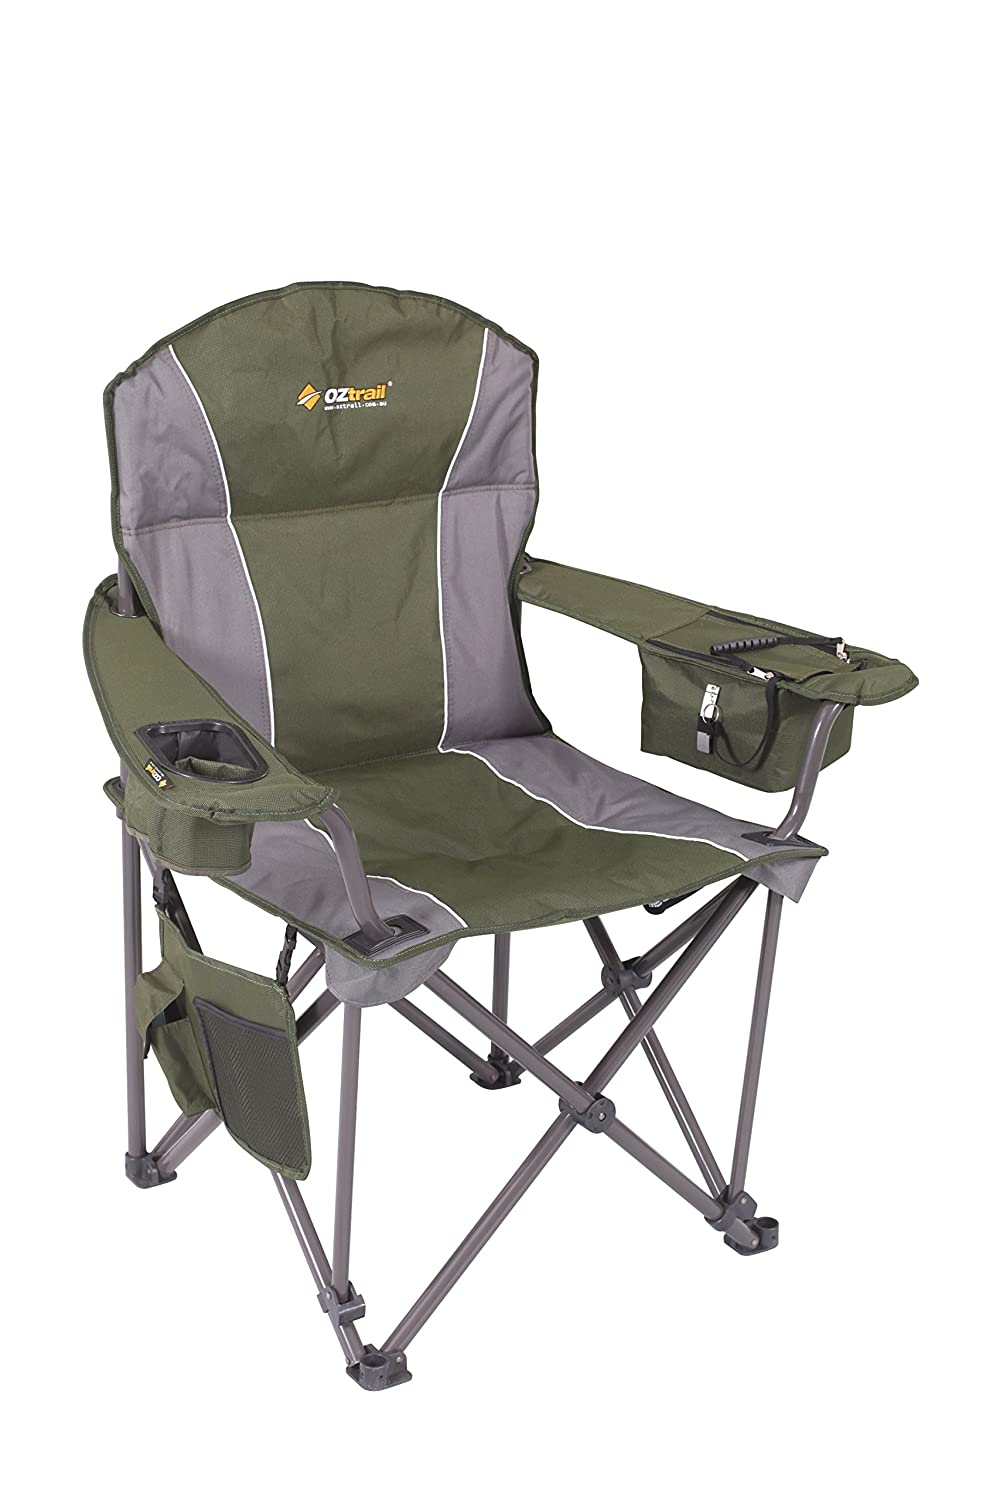 Oztrail Titan Foldable Portable Camping Chair